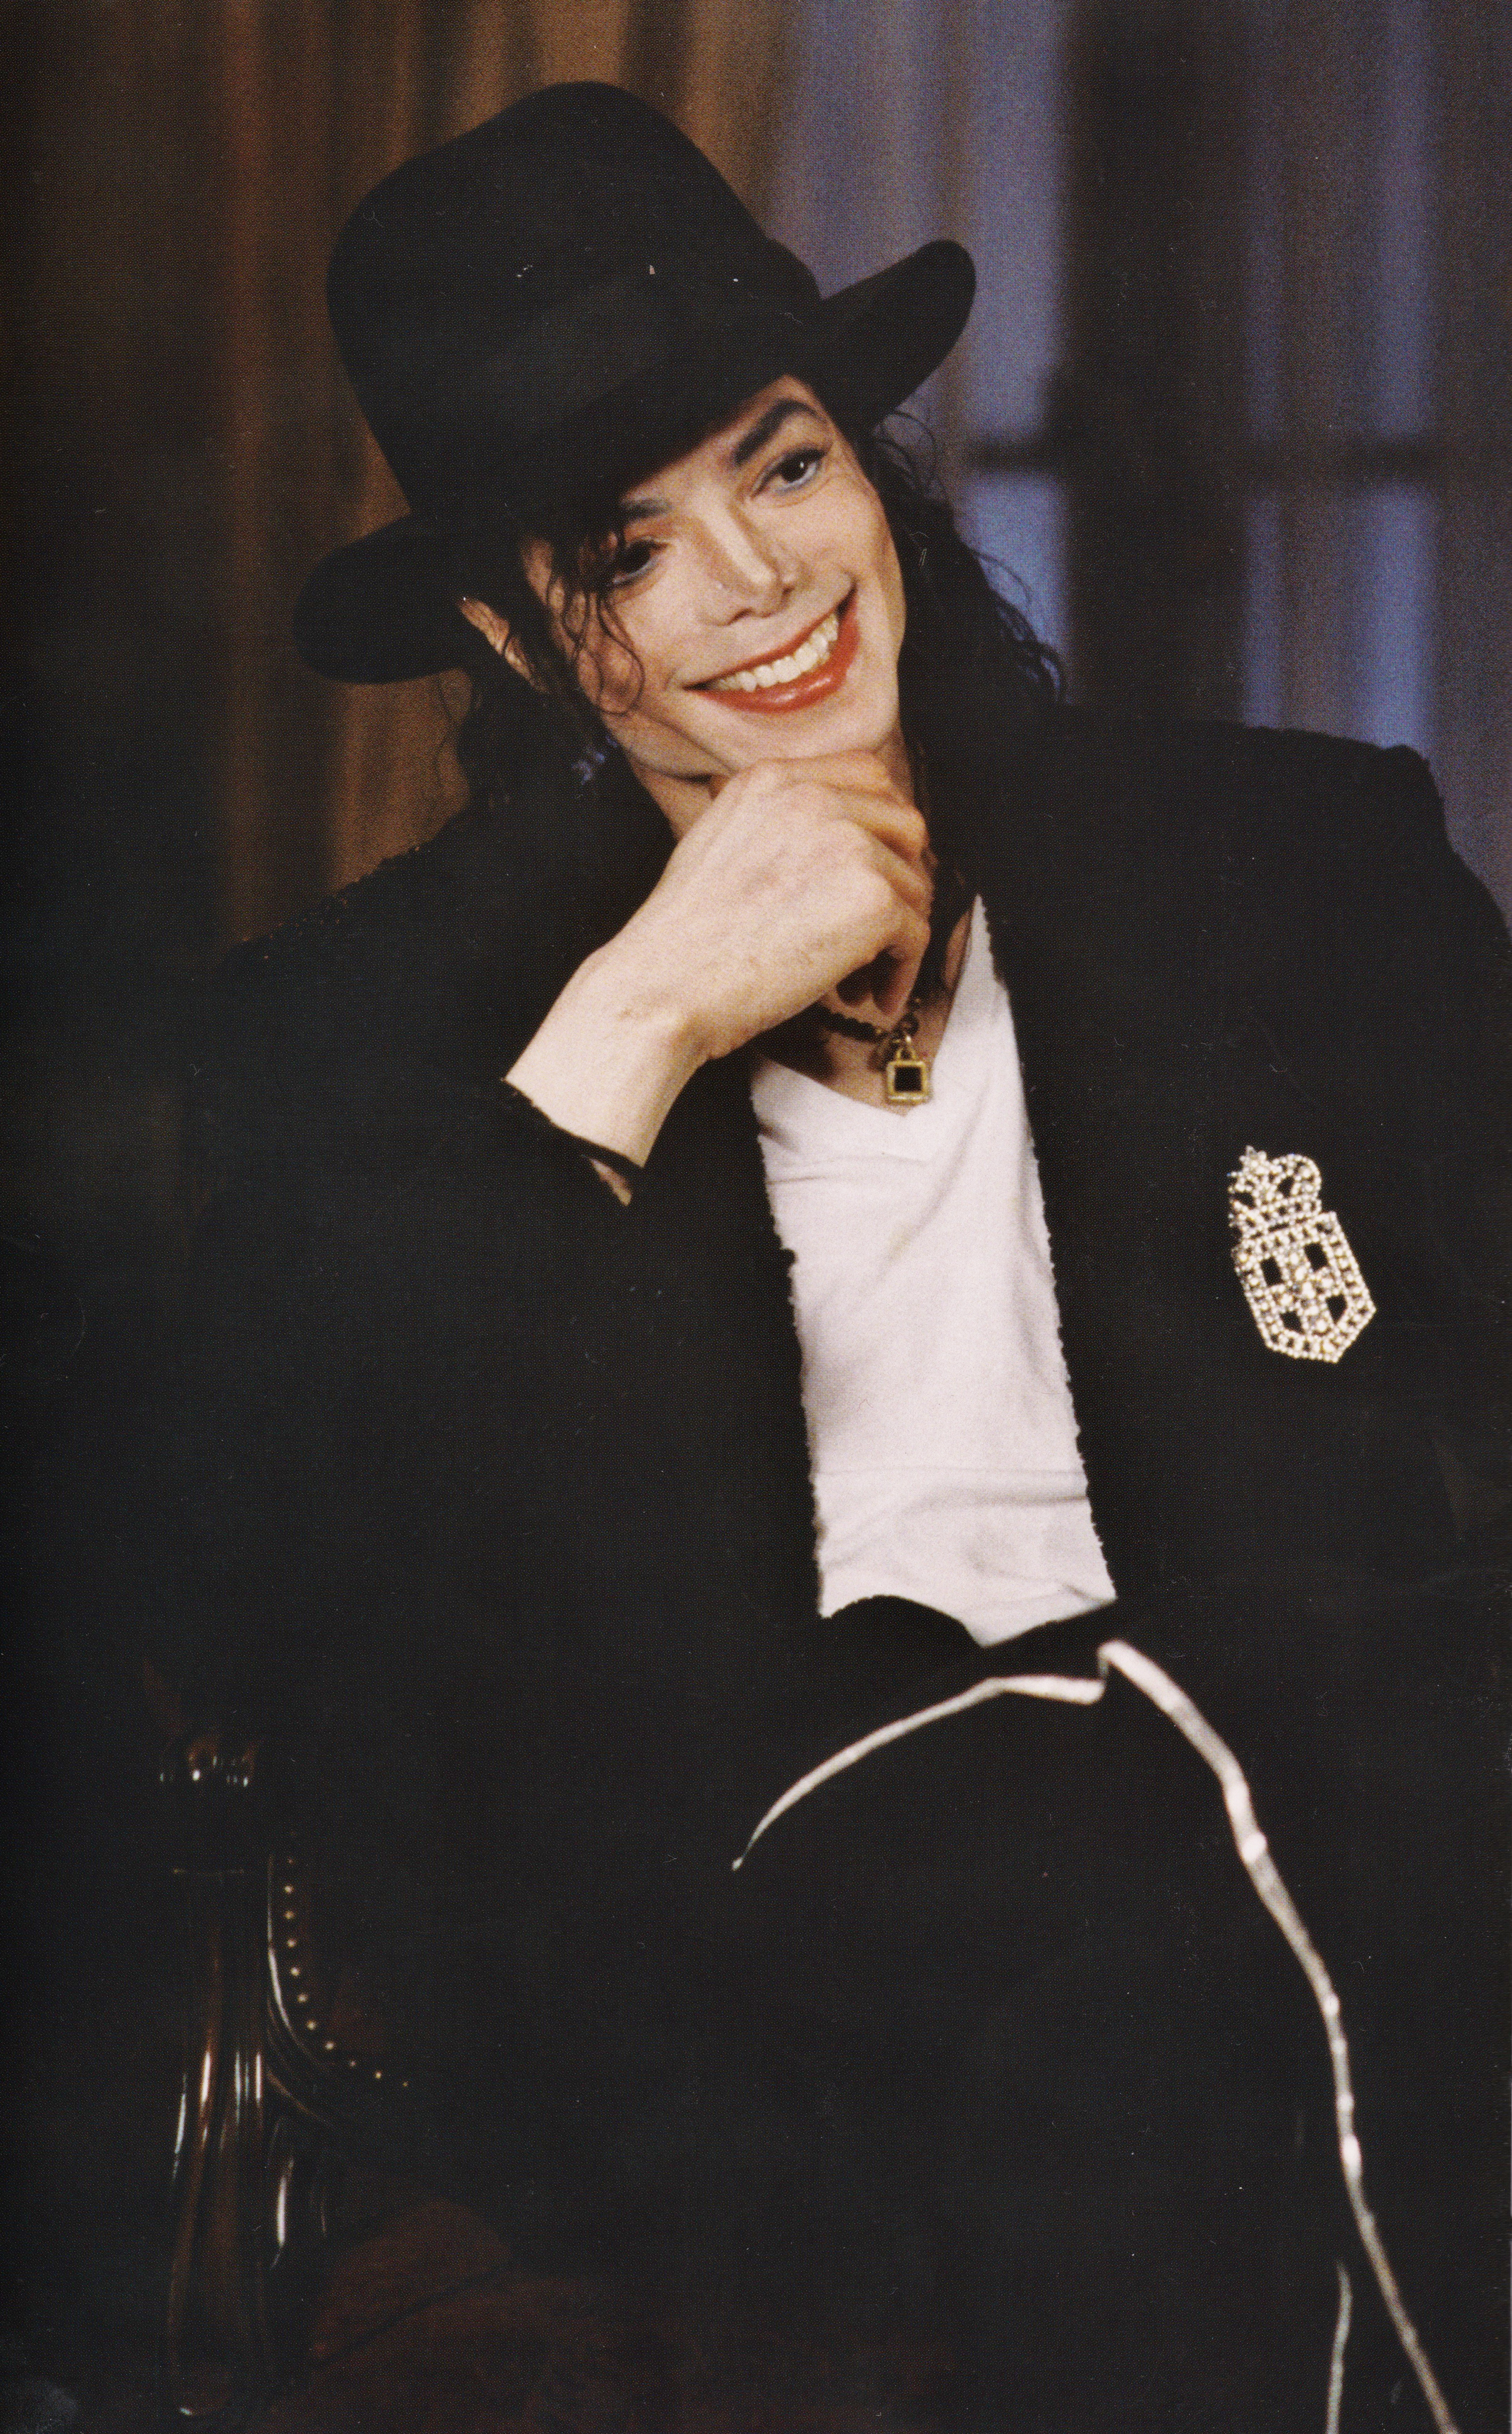 Michael Jackson - HQ Scan - Barbara Walters Interview ' 97